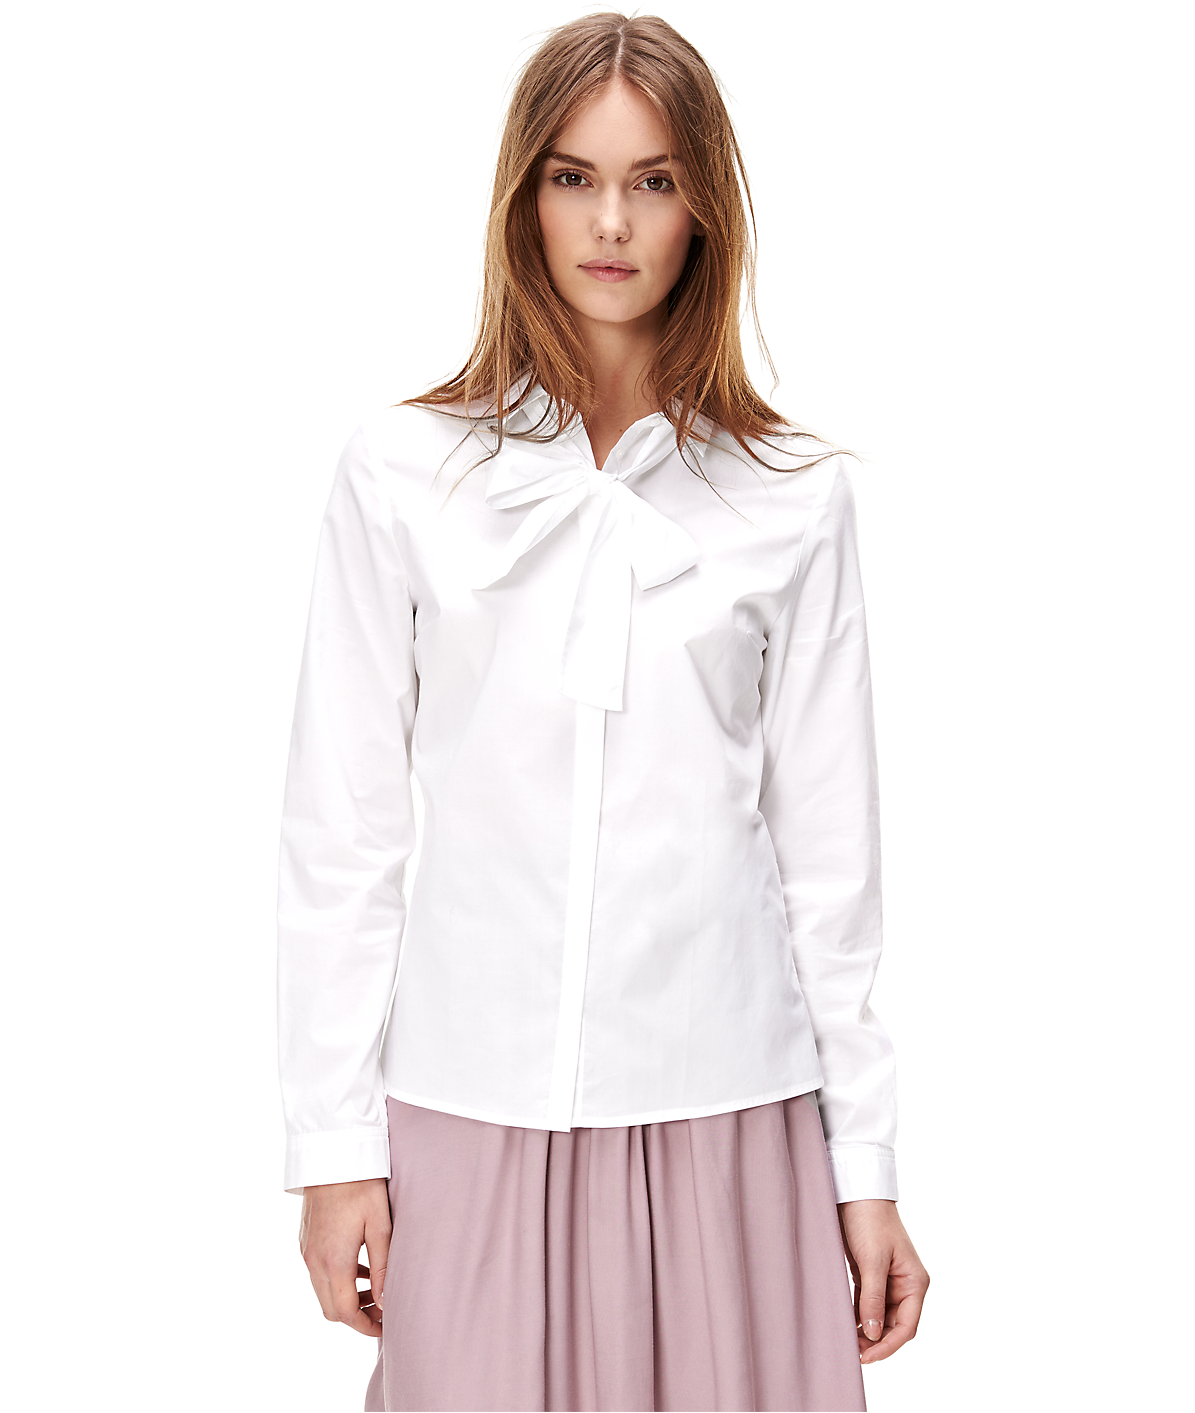 Blouse with a pussy bow collar F1162000 from liebeskind